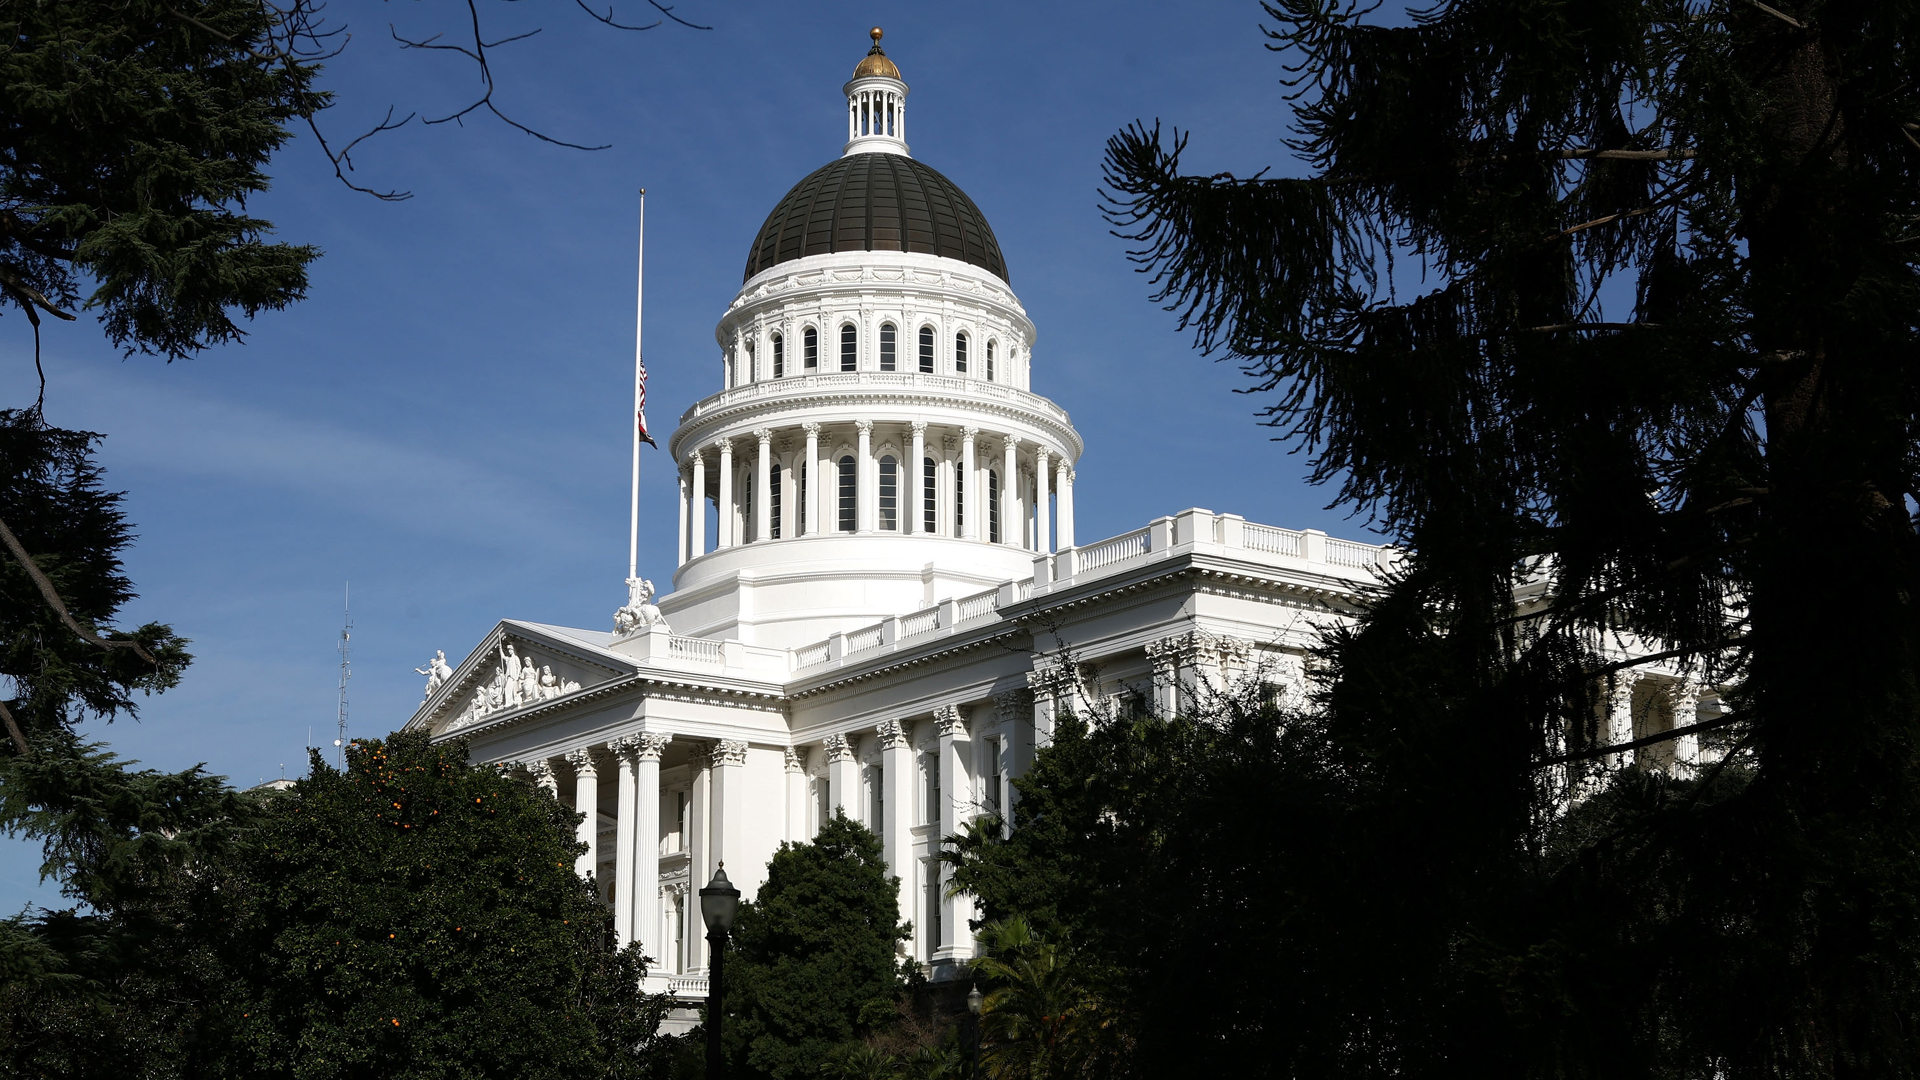 The California State Capitol is seen in a photo taken on Feb. 19, 2009, in Sacramento. (Credit: Justin Sullivan/Getty Images)